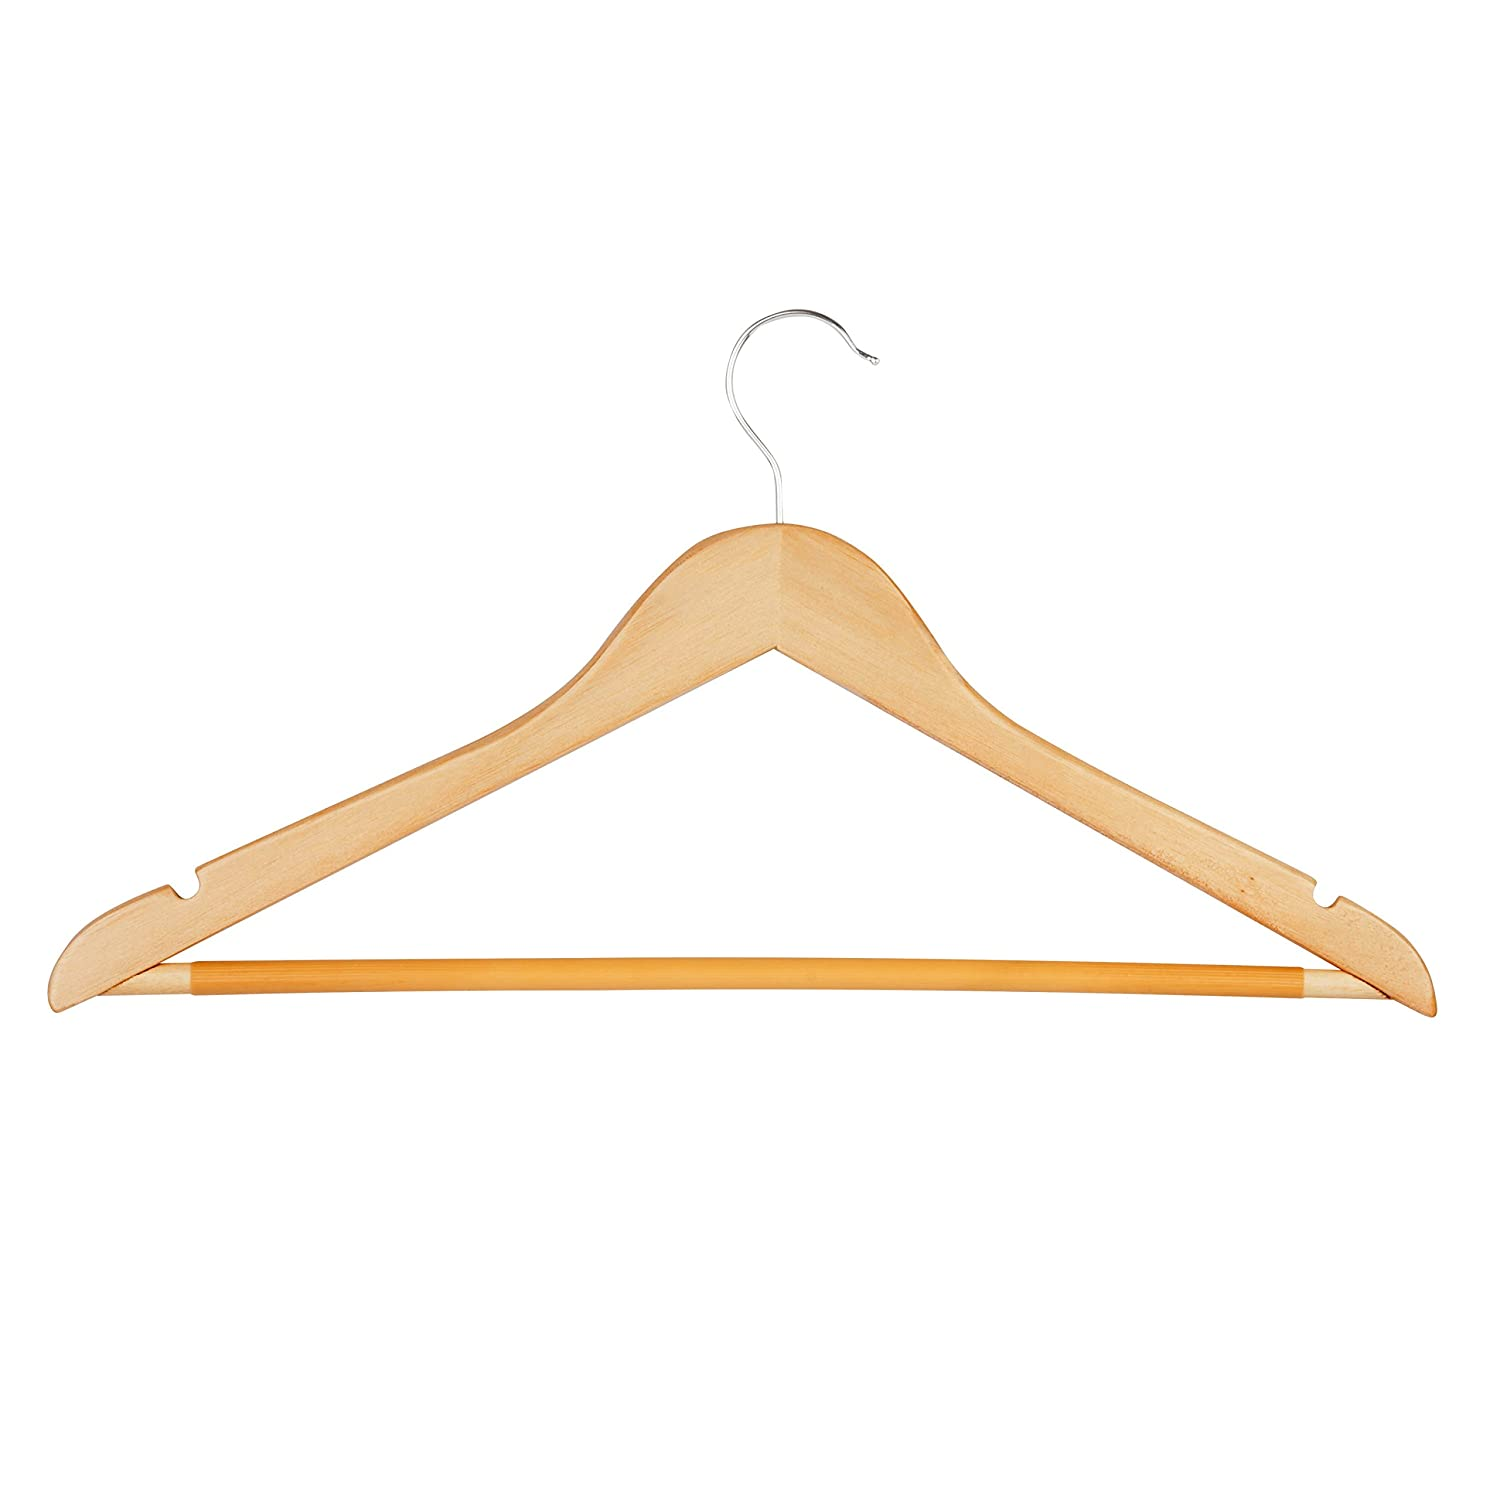 Honey Can Do Hng 01334 Wood Hangers With Non Slip Grooved Bar 24 Pack Maple